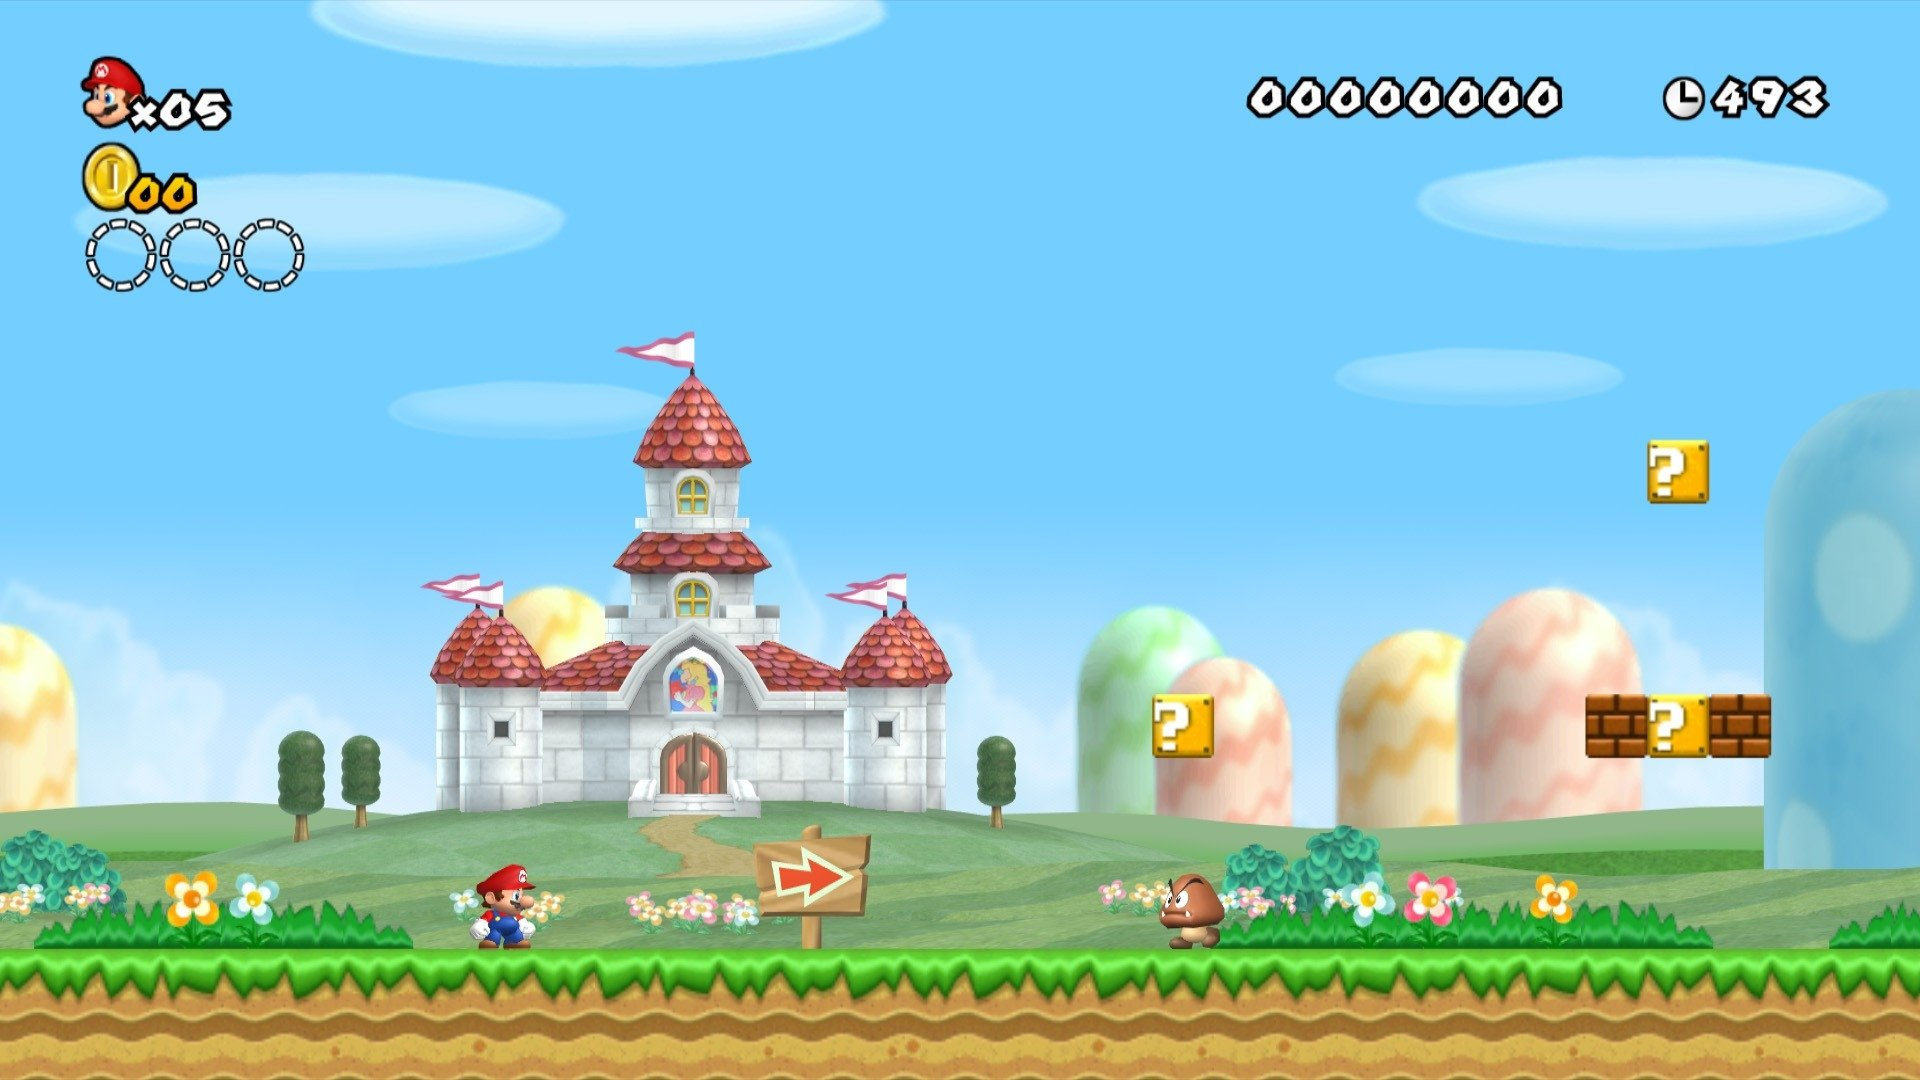 Video Game - New Super Mario Bros. Wii  Wallpaper